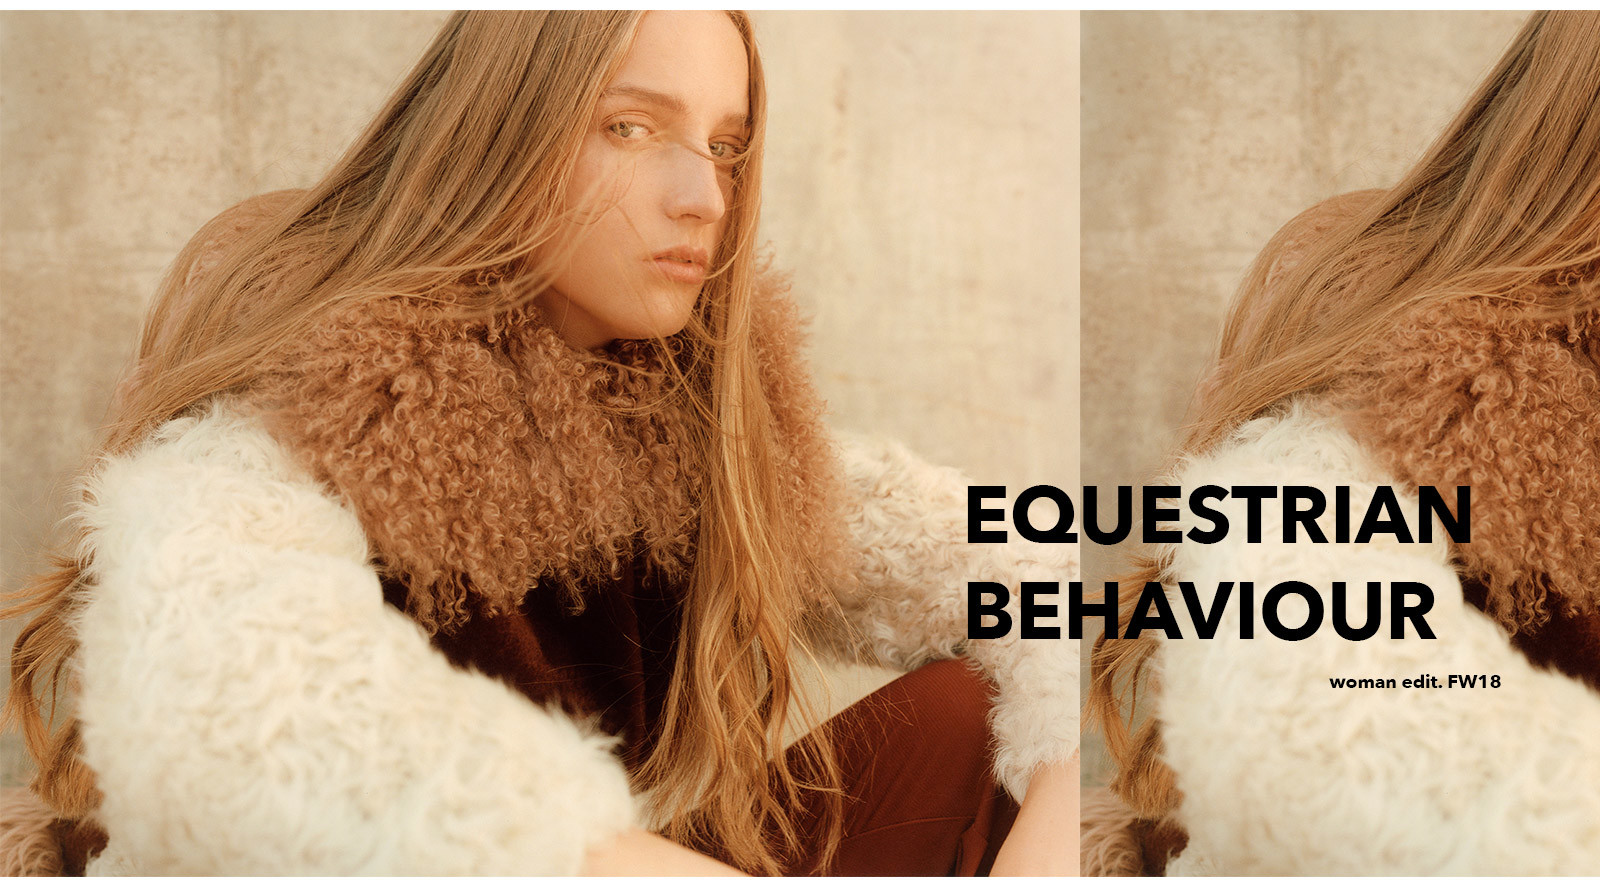 Sfera 'Equestrian Behaviour'